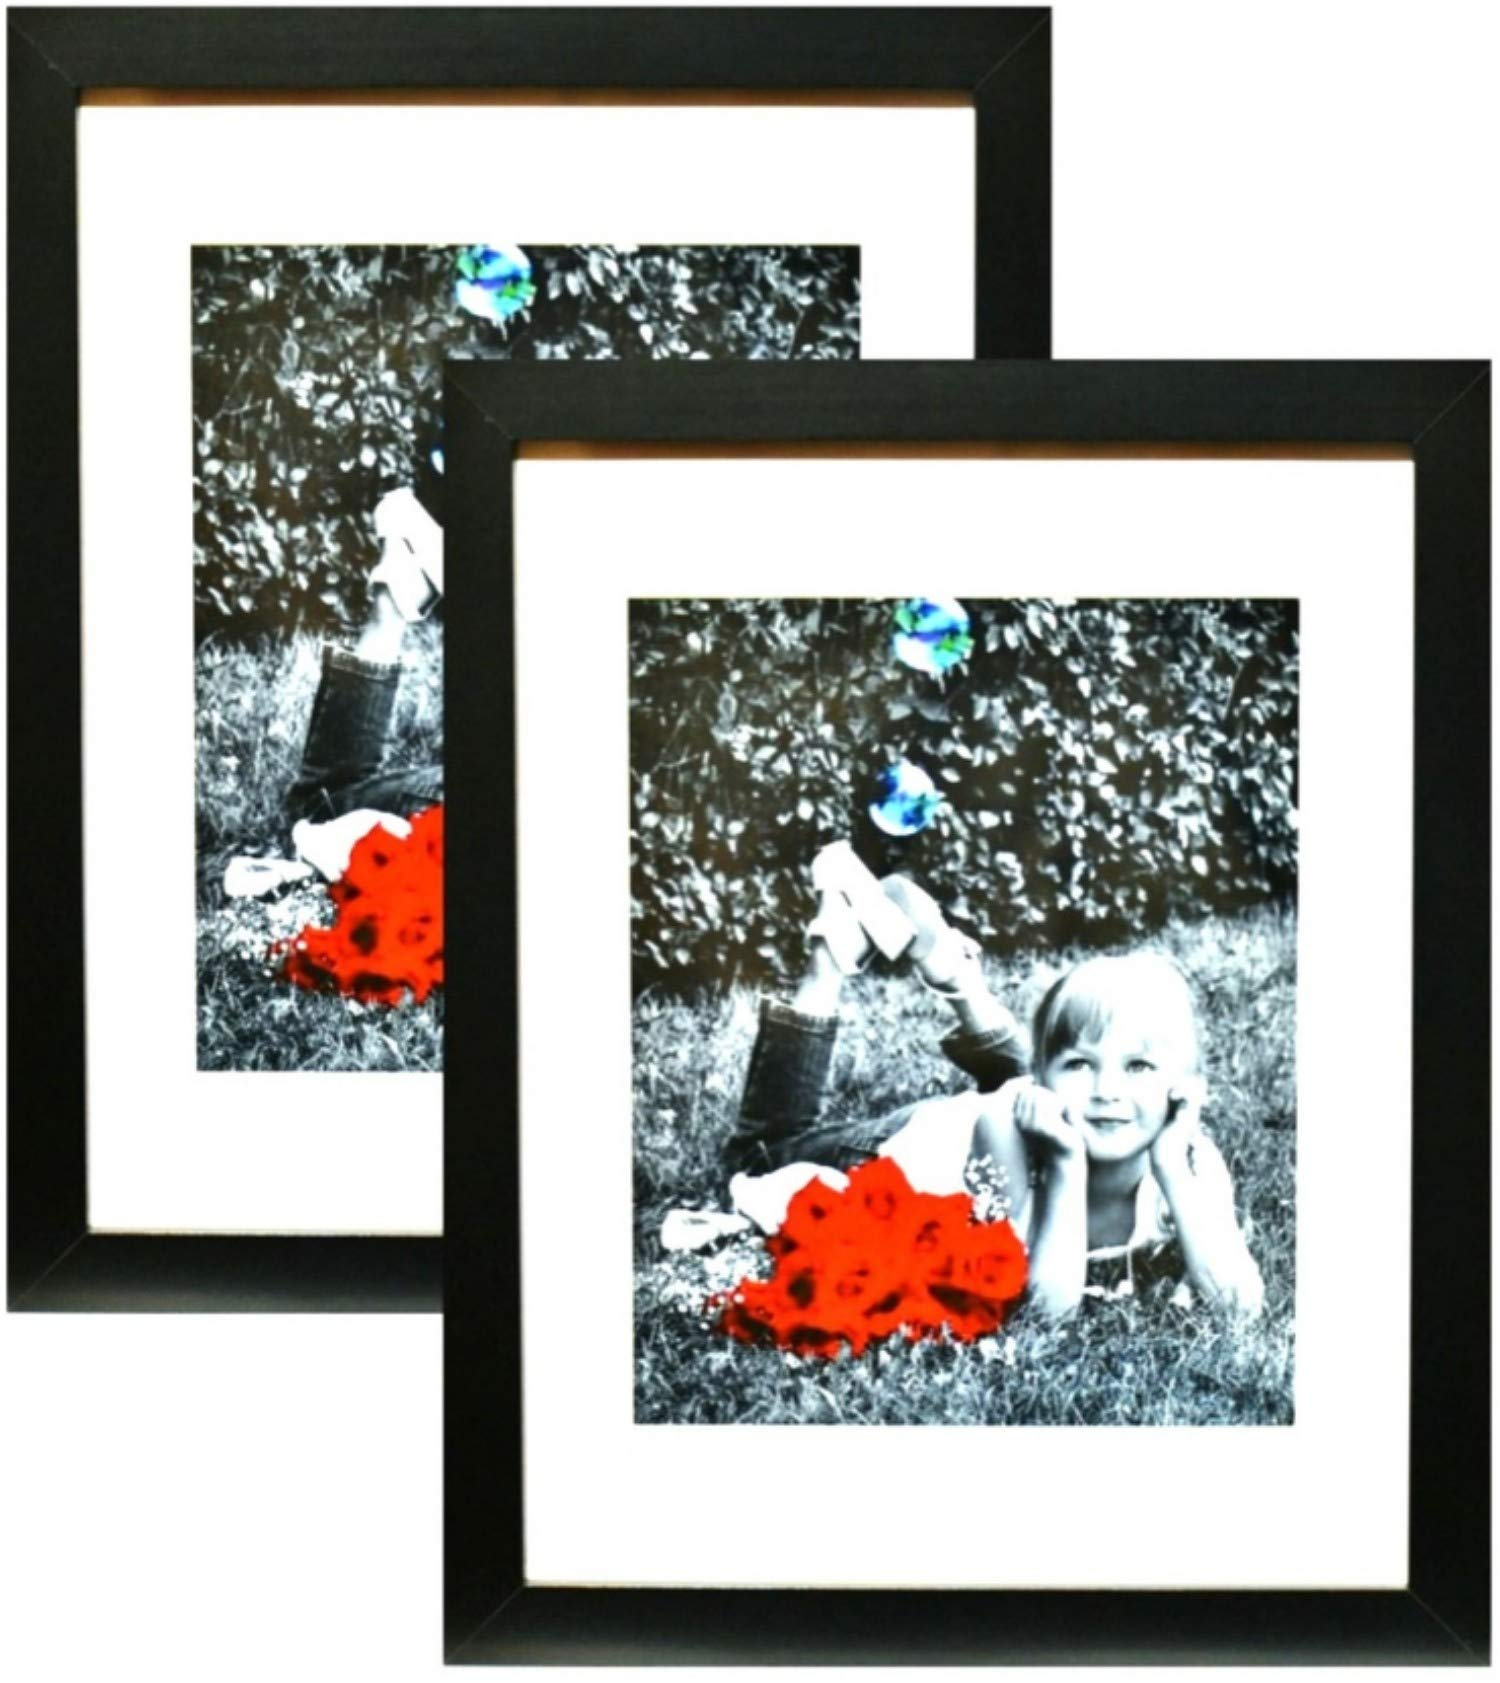 11x14 Inch Picture Frame Black (2-pack) - GLASS FRONT COVER - Displays an 11 by 14'' Picture w/o Mat or an 8x10 Photo with Mat - Vertical or Horizontal Mounts & Easy To Hang - No Hardware to Install.